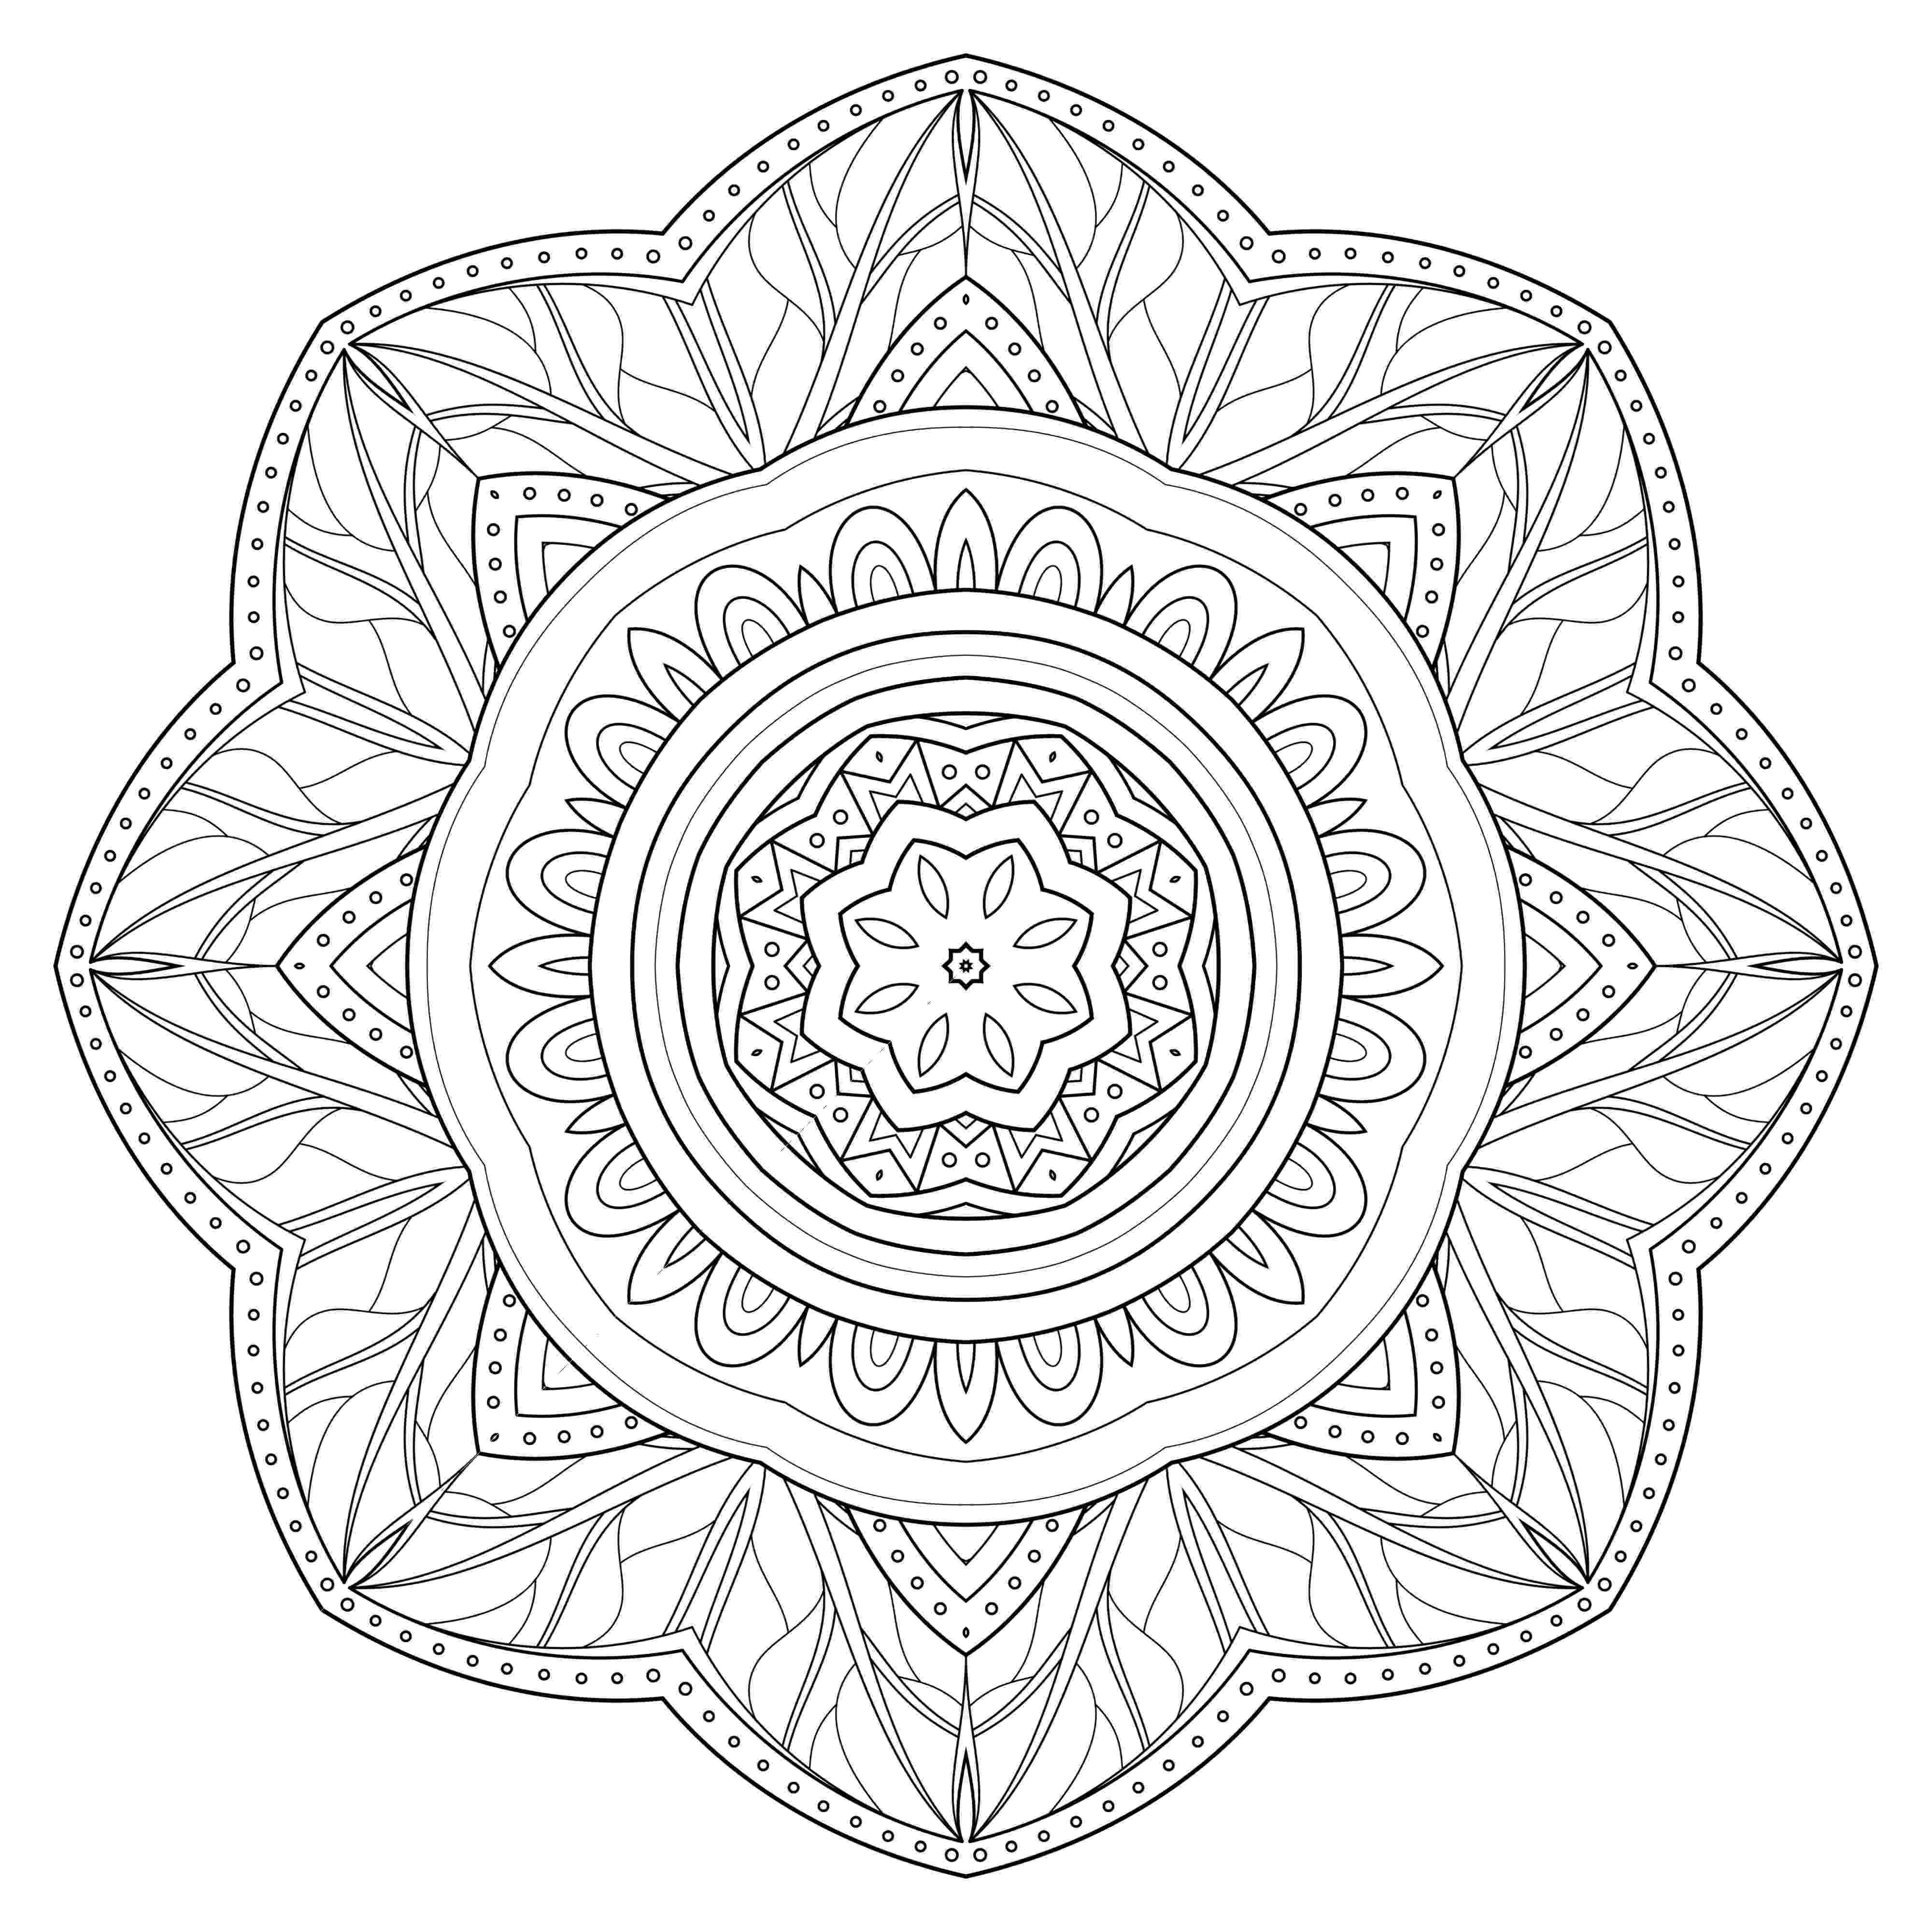 coloring mandalas free printable mandala coloring pages for kids to download and print for free printable coloring mandalas free